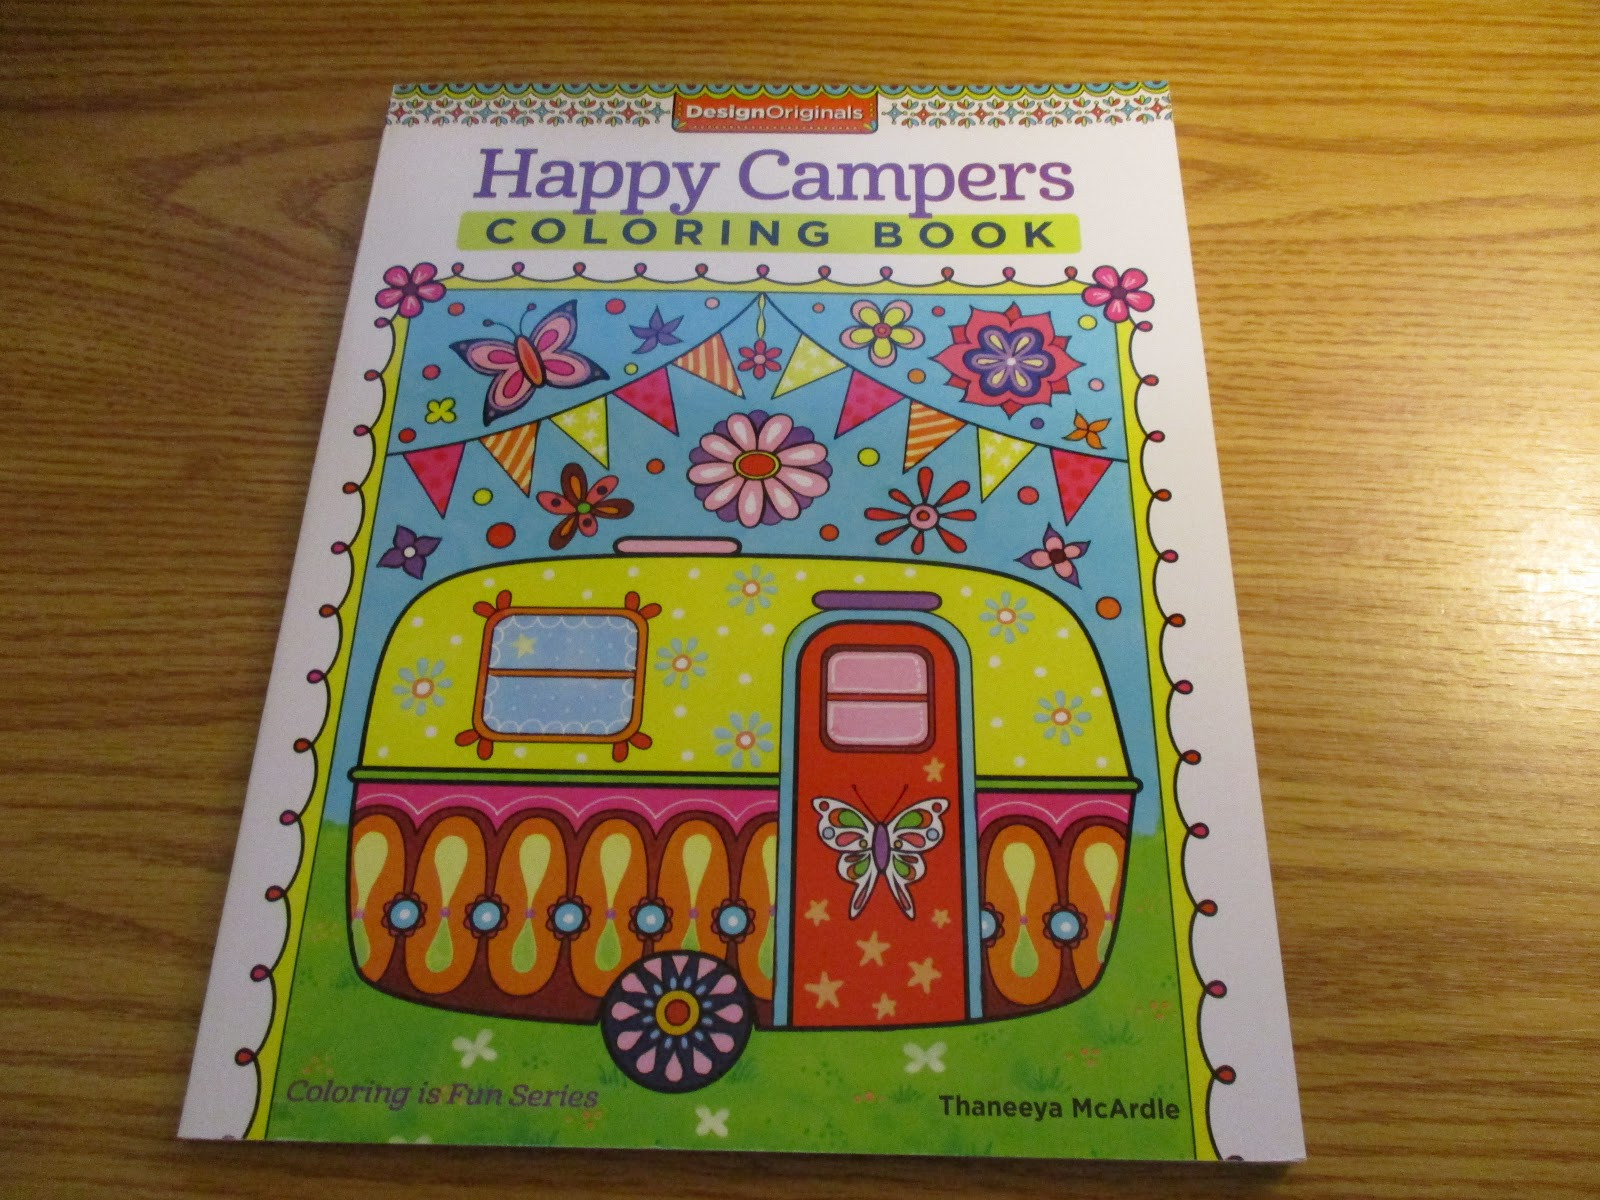 Happy Campers Coloring Book  Missys Product Reviews Happy Campers Coloring Book by